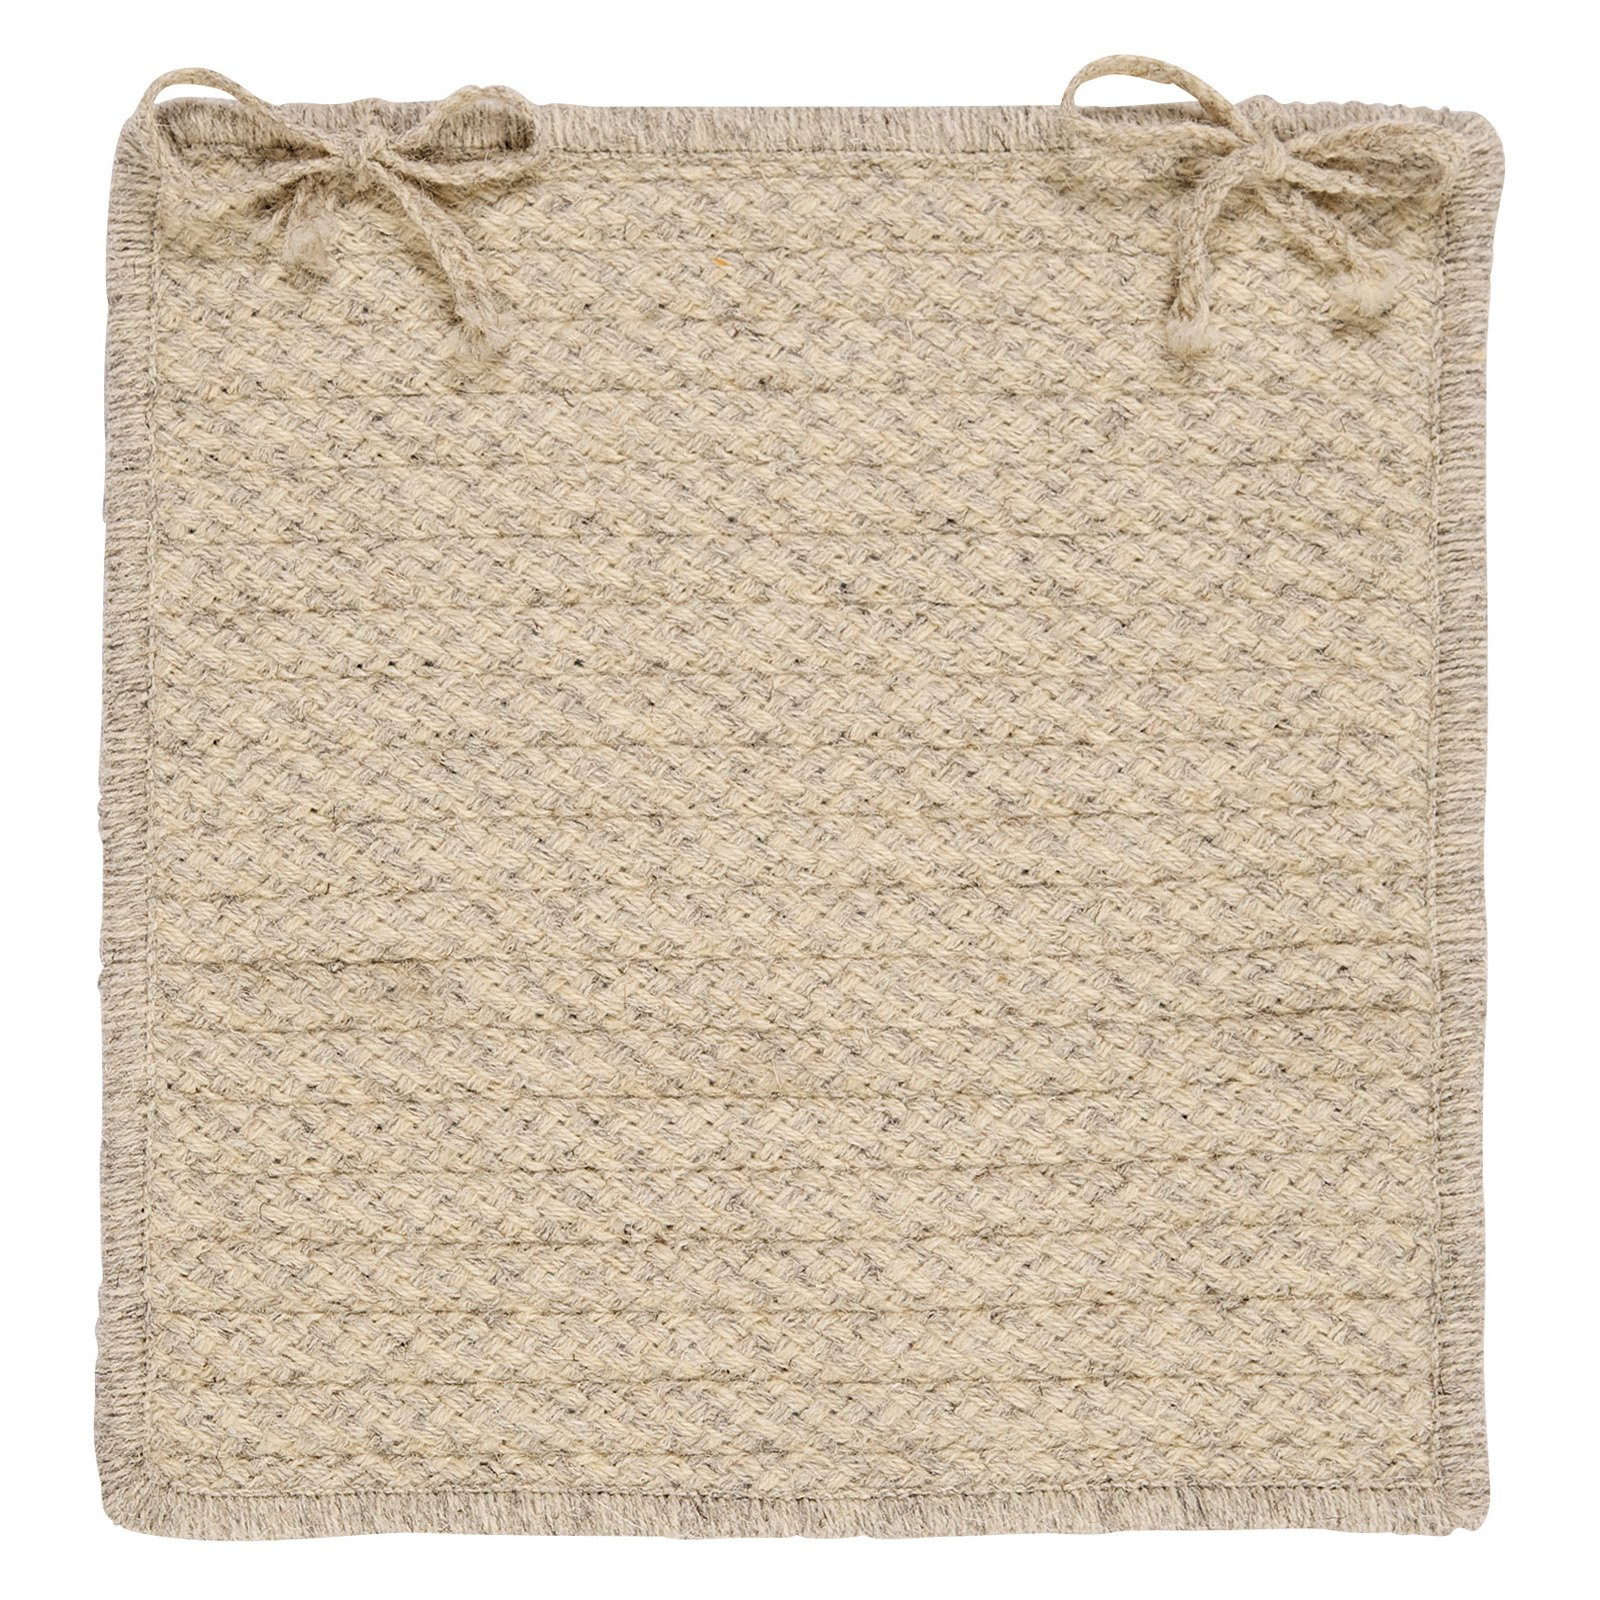 Colonial Mills HD31A015X015S Natural Wool Houndstooth 15 in. Cream Chair Pad Set of 4 by Colonial Mills Inc